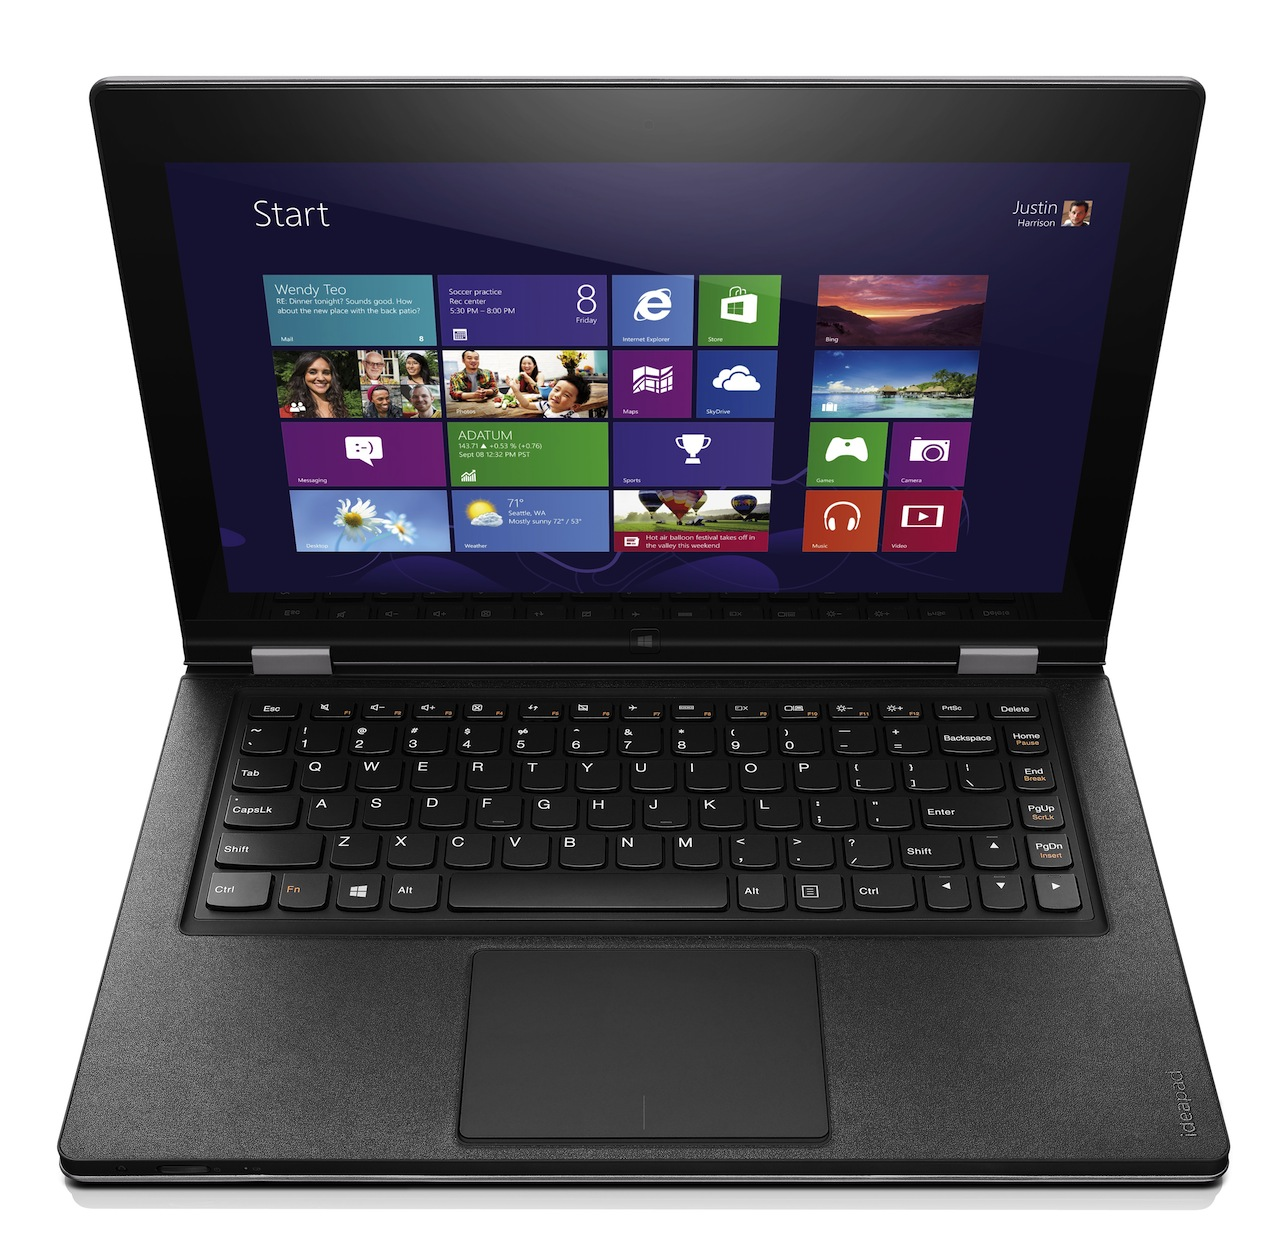 The IdeaPad Yoga 13 is .67 inches (17mm) thick and weighs 3.4 pounds (1.54kg).